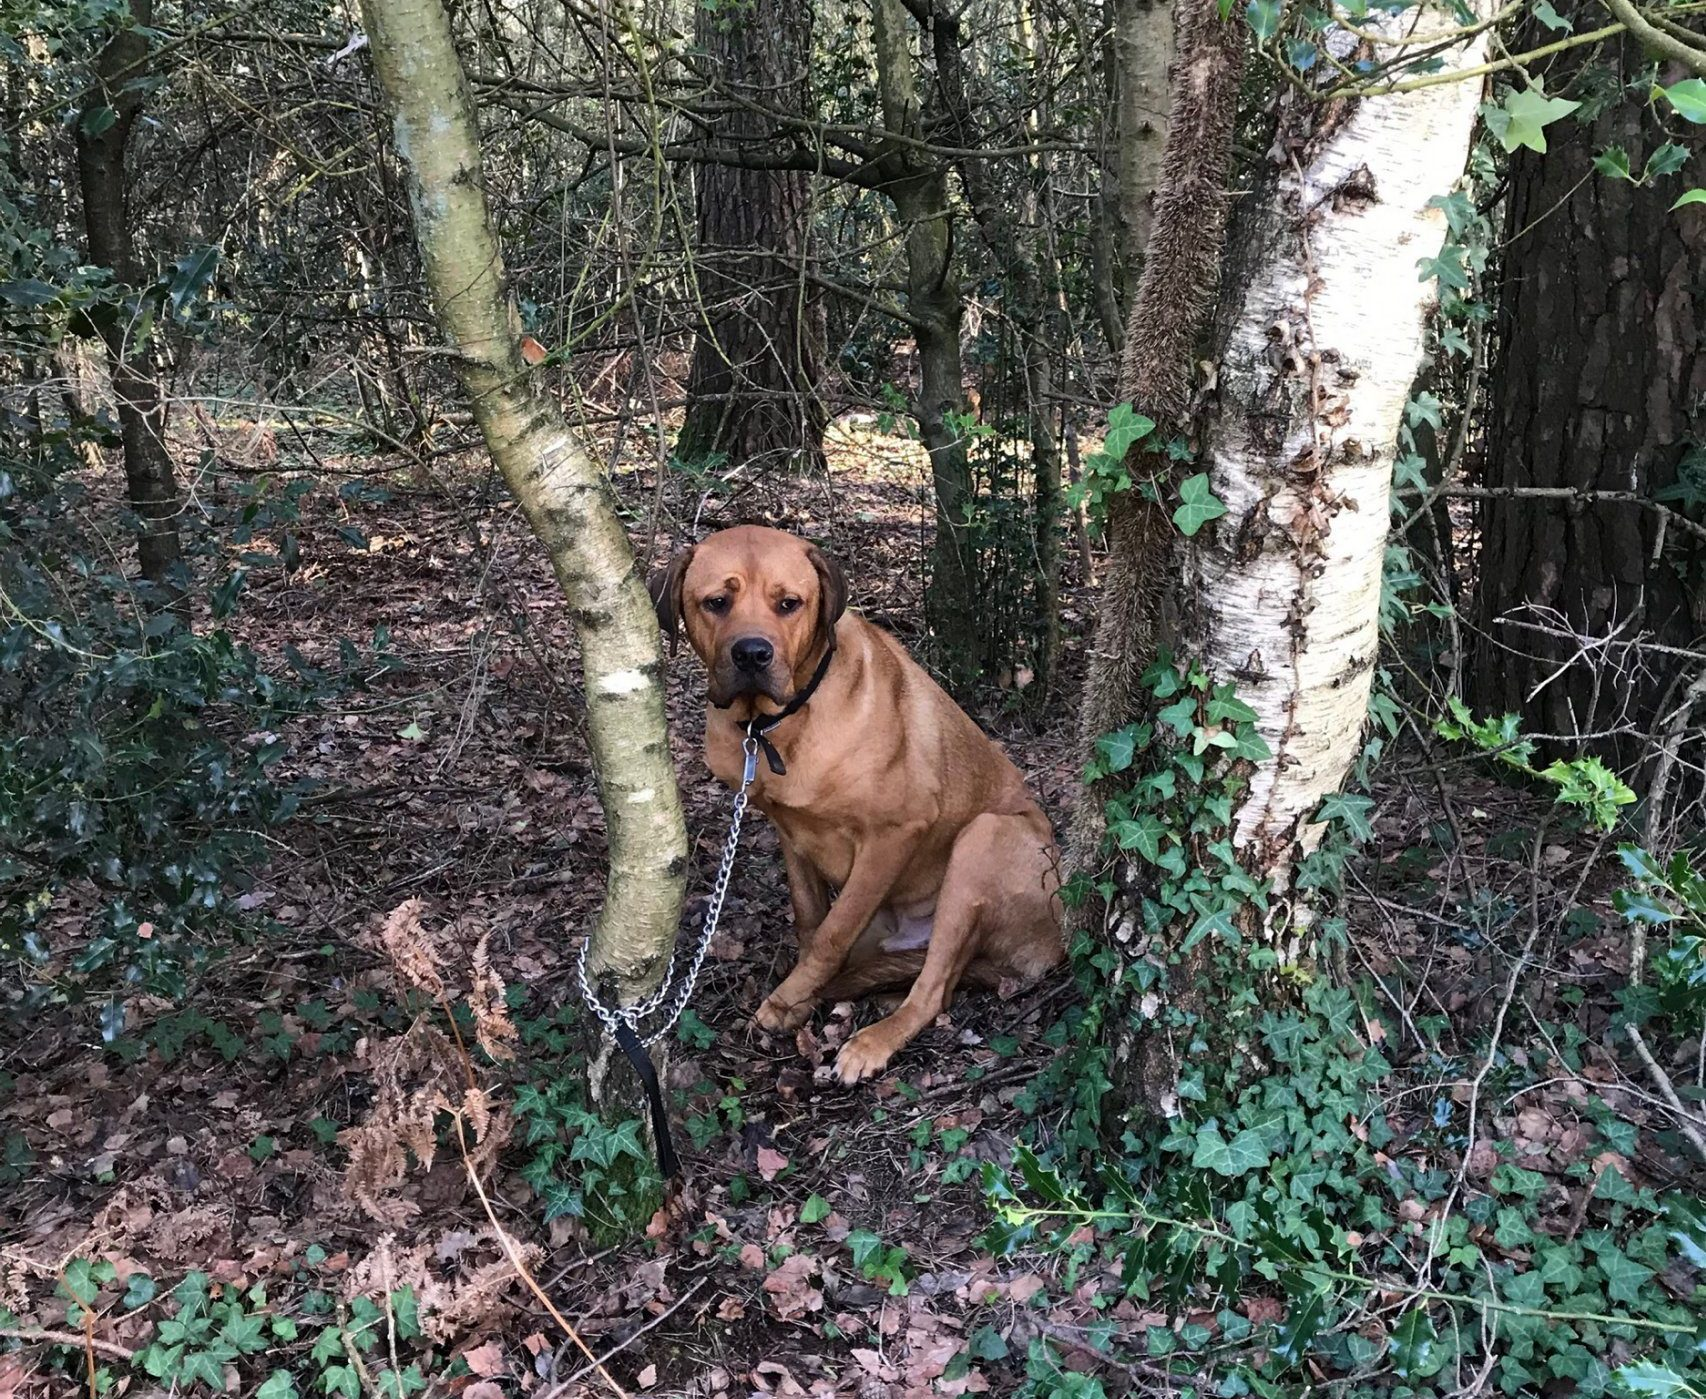 Dog abandoned and tied to tree 50 metres from animal shelter